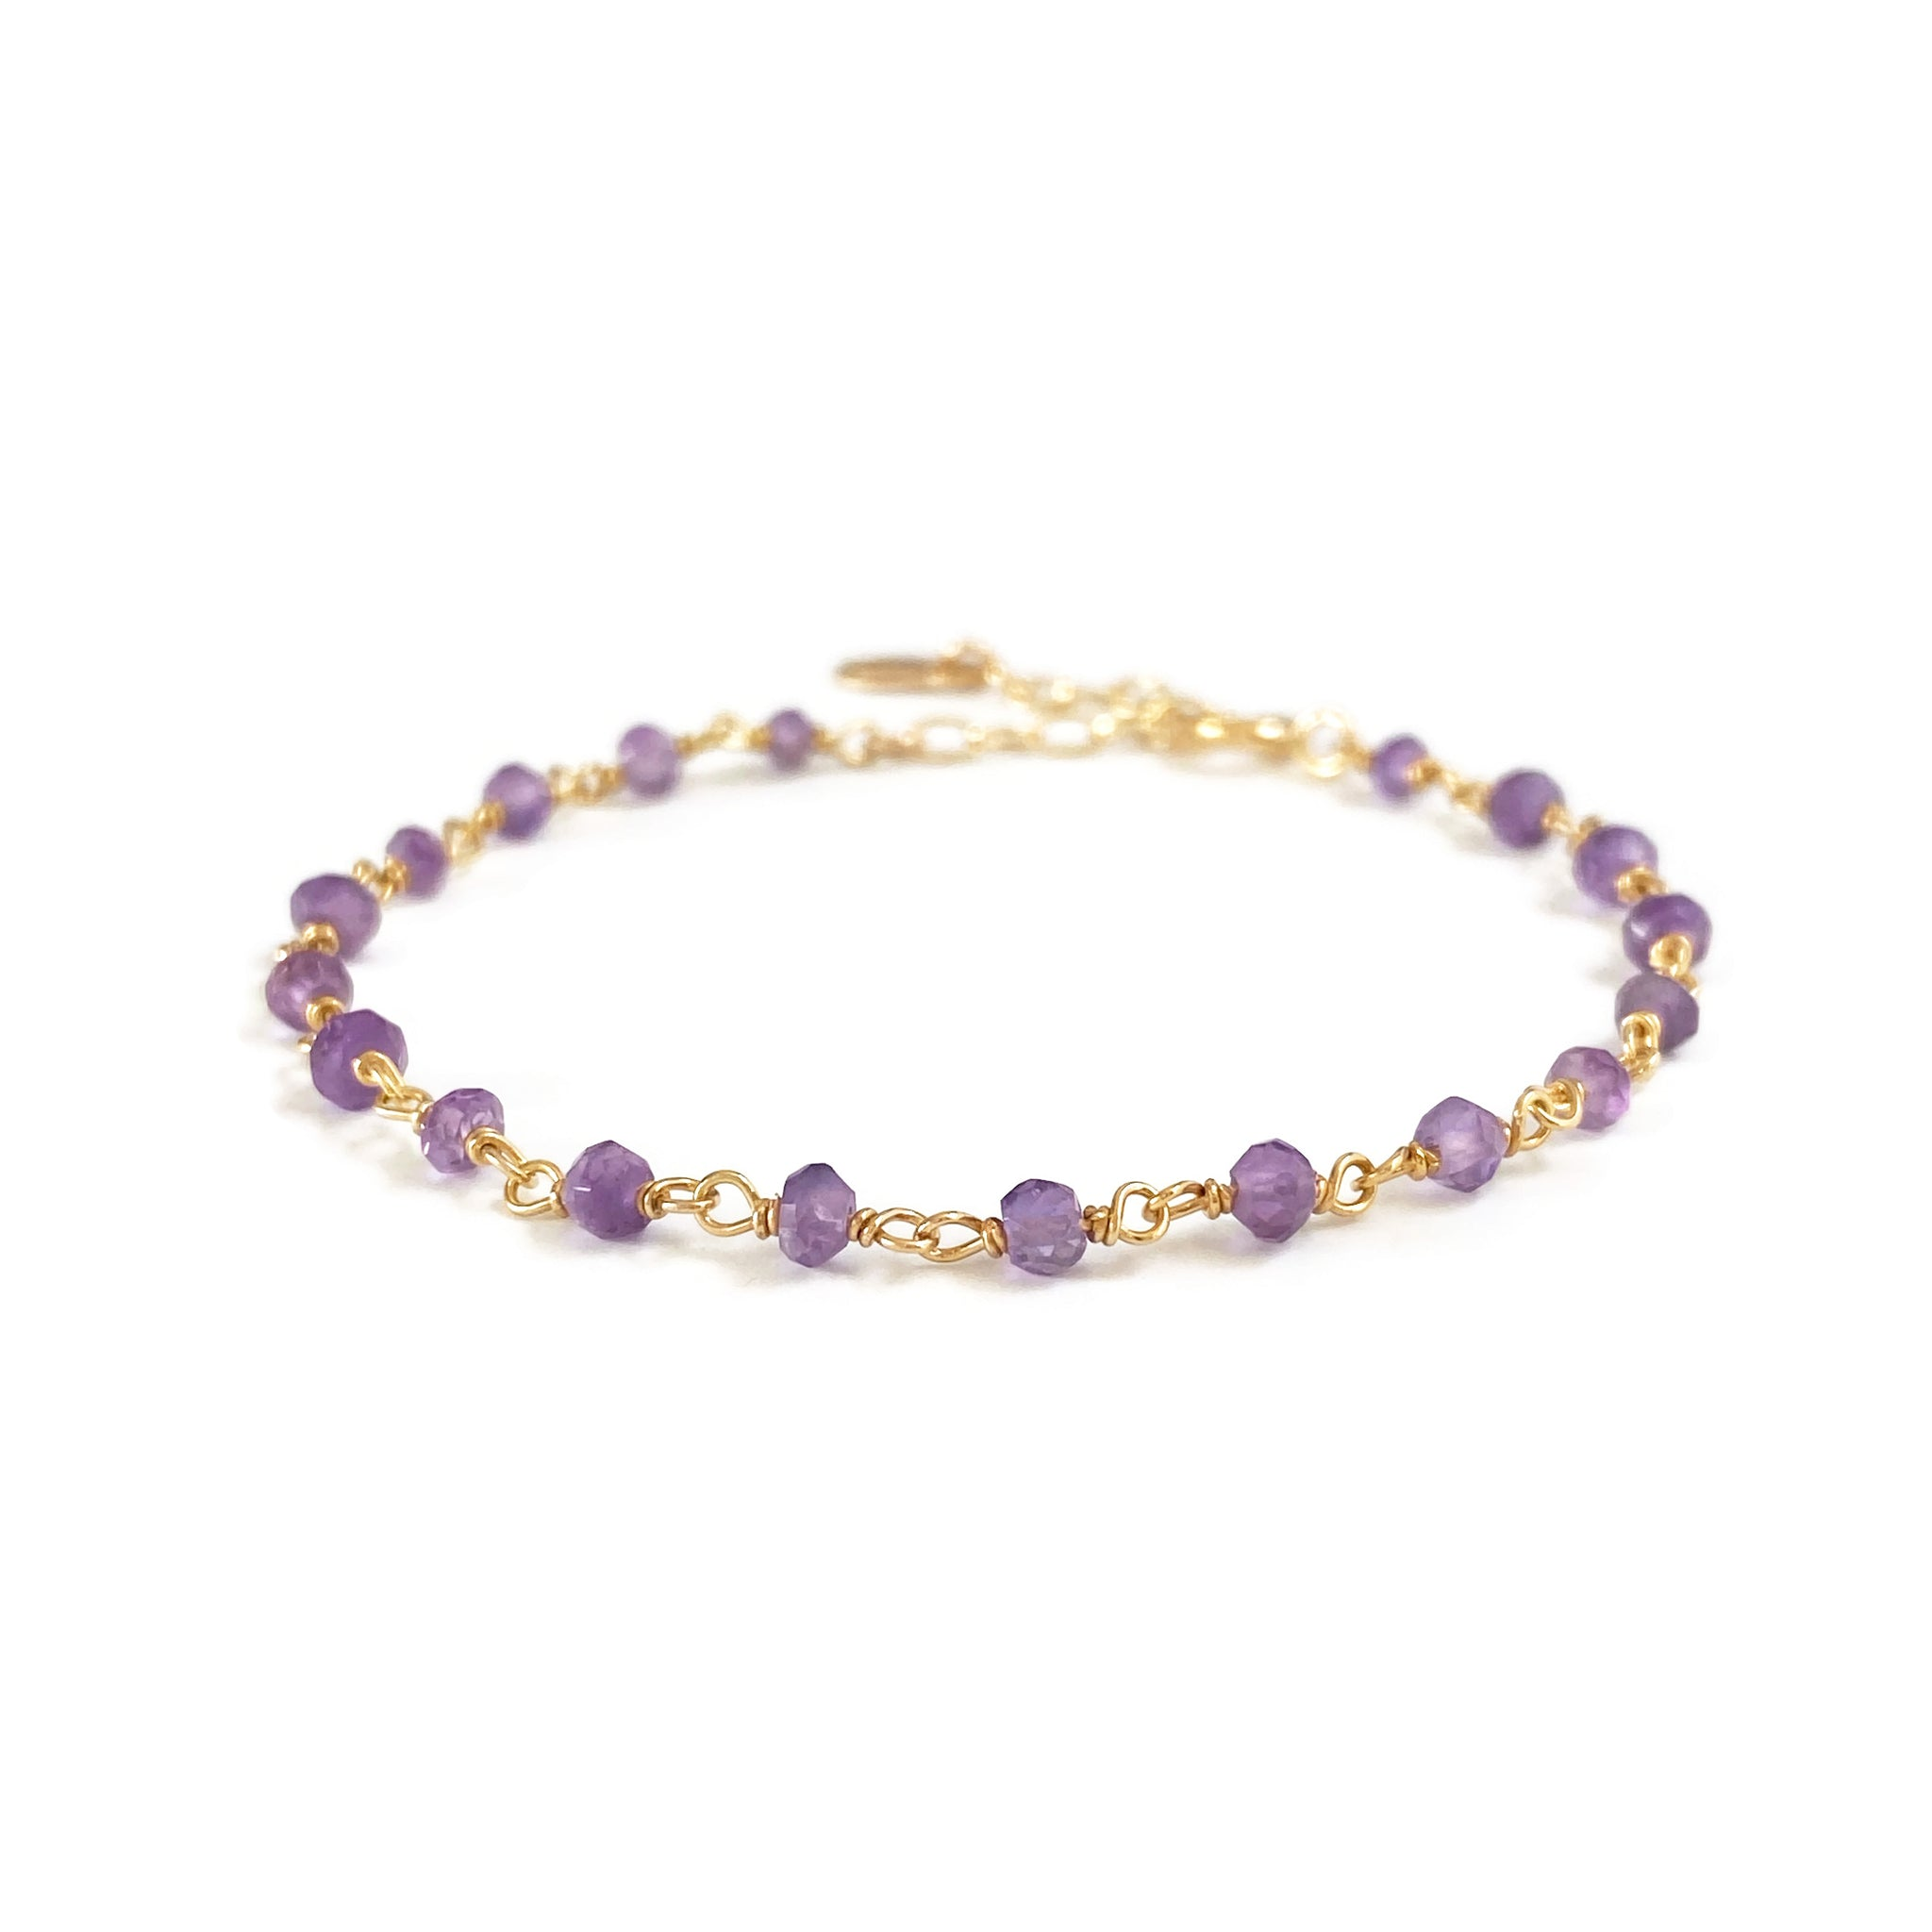 This cute amethyst bracelet is February birthstone bracelet